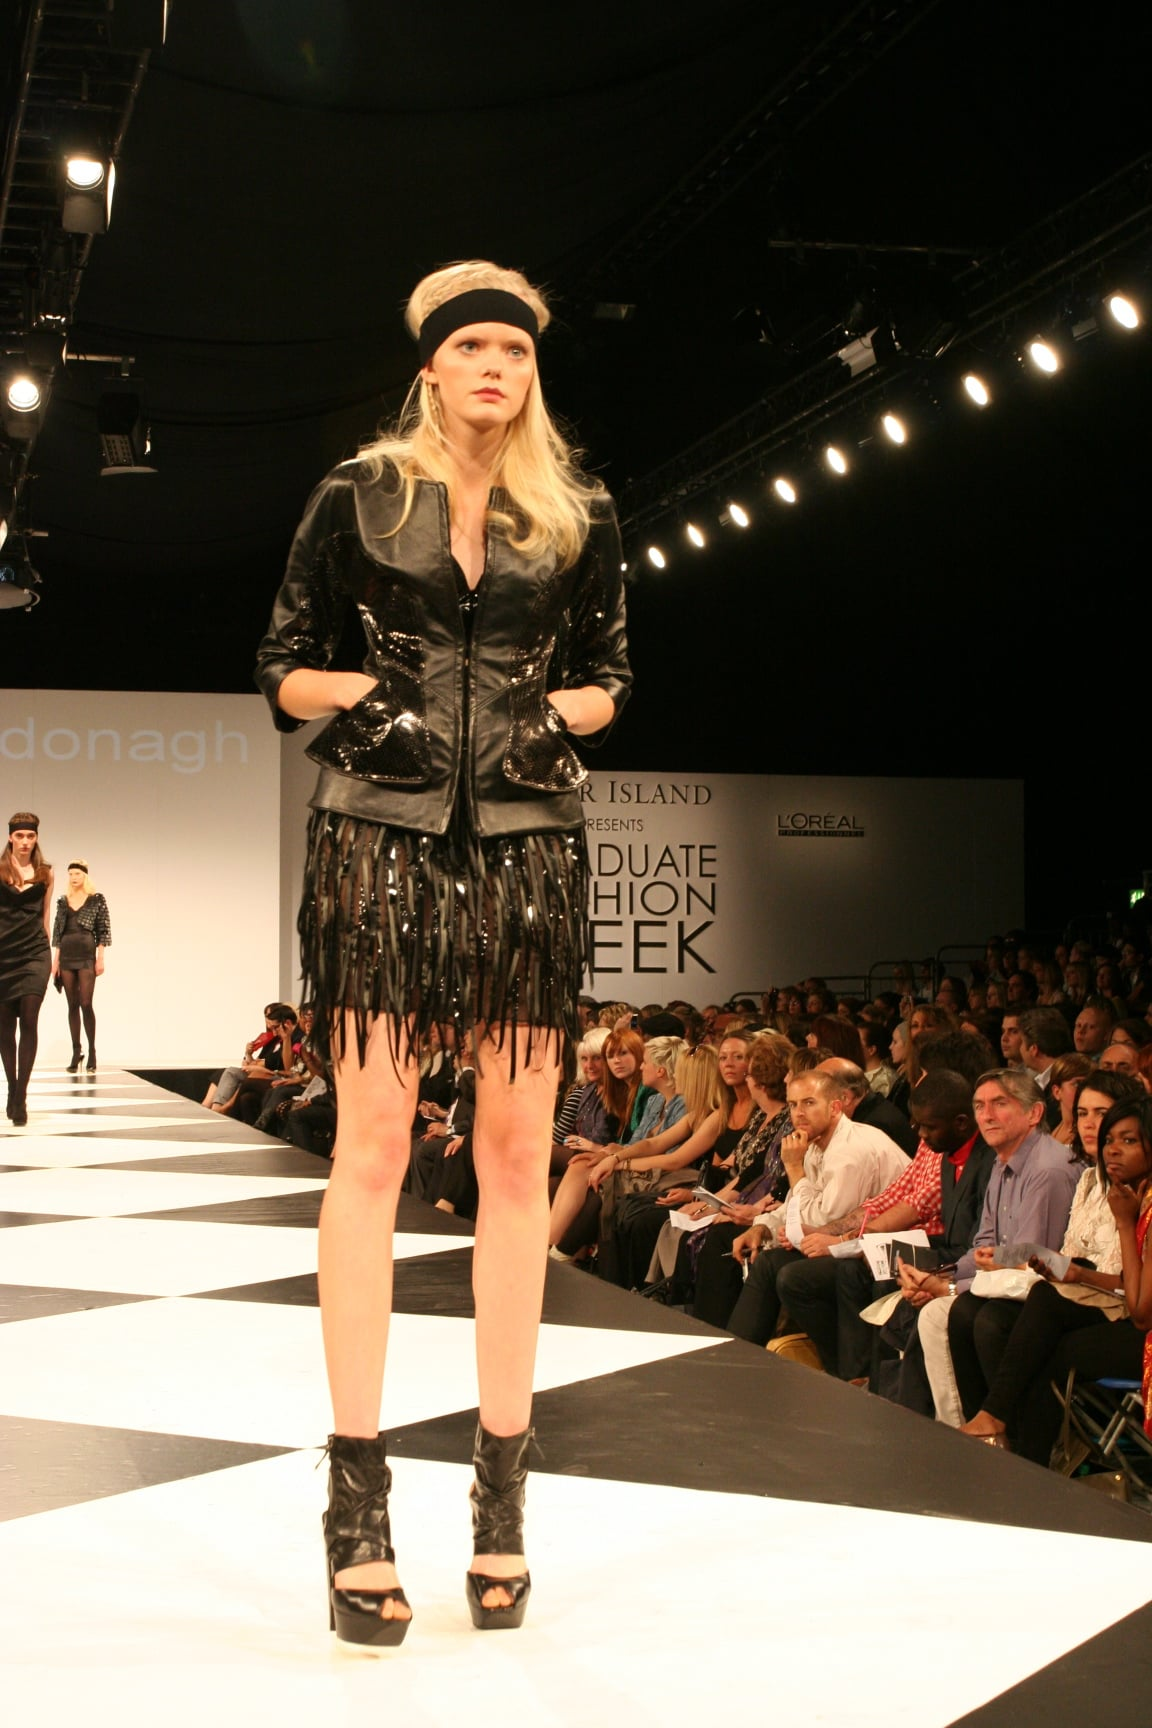 northumbria university at graduate fashion week 2009